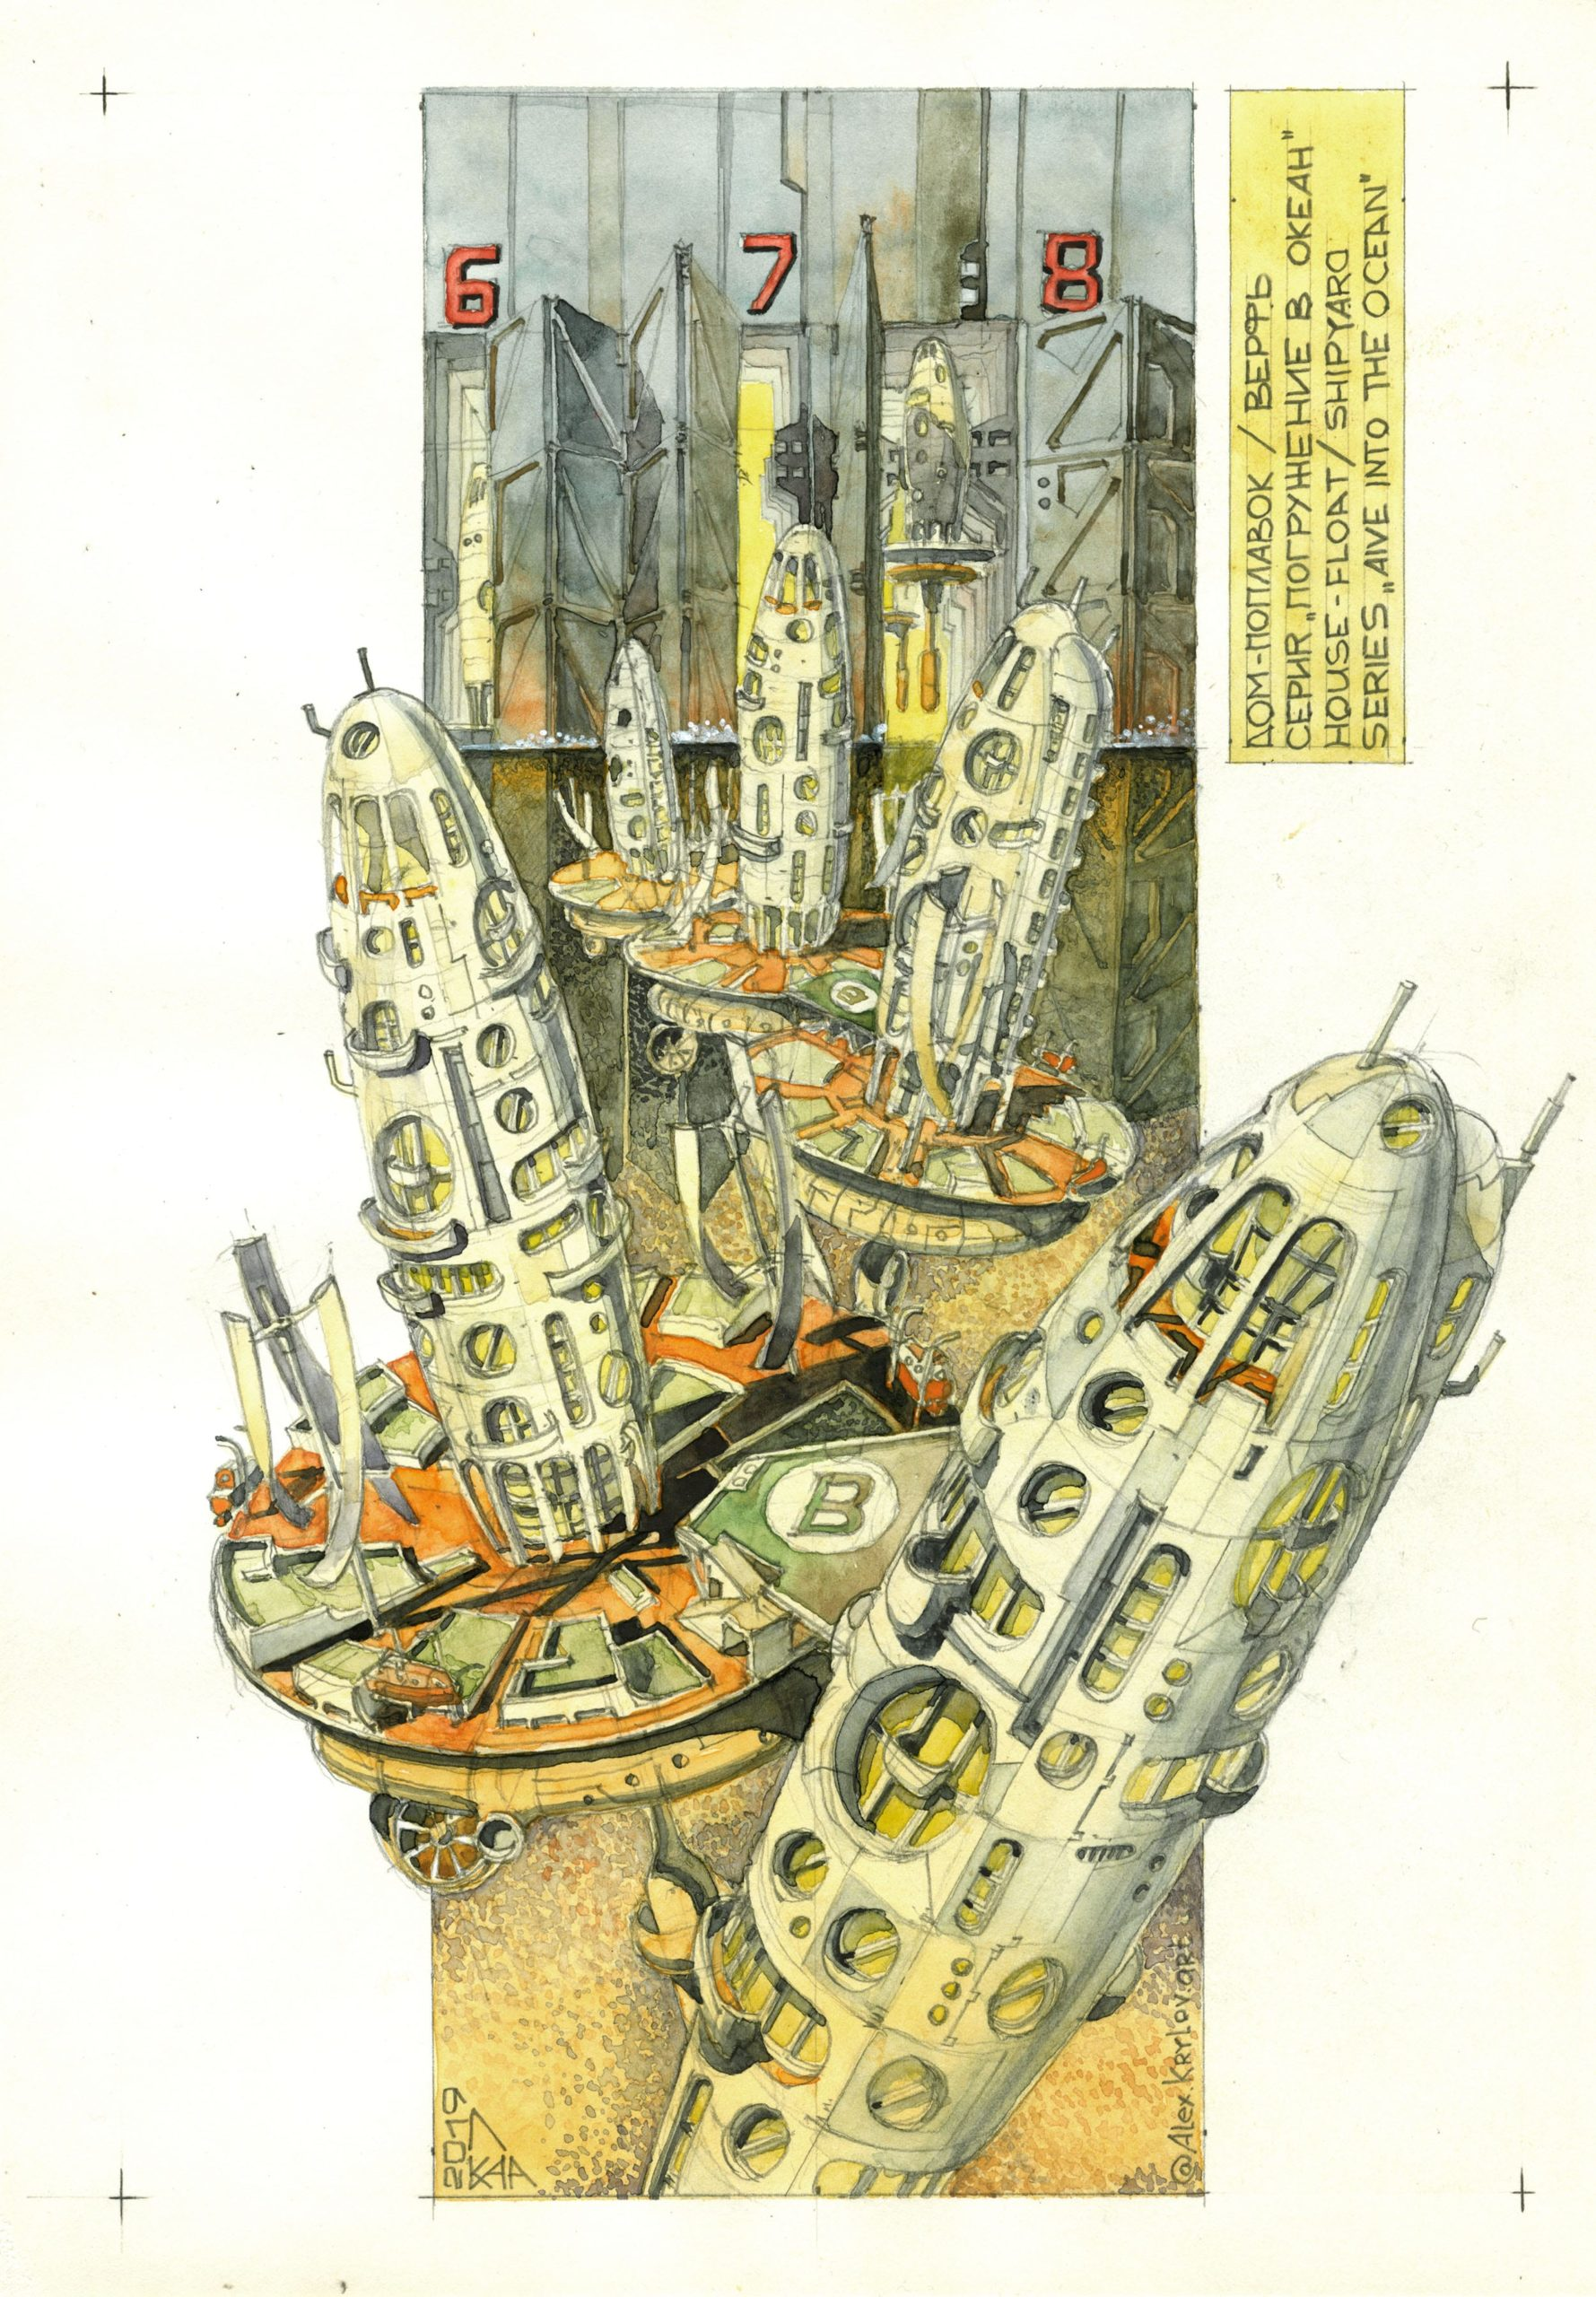 Fantasy Architectural Drawings By Alexandr Krylov